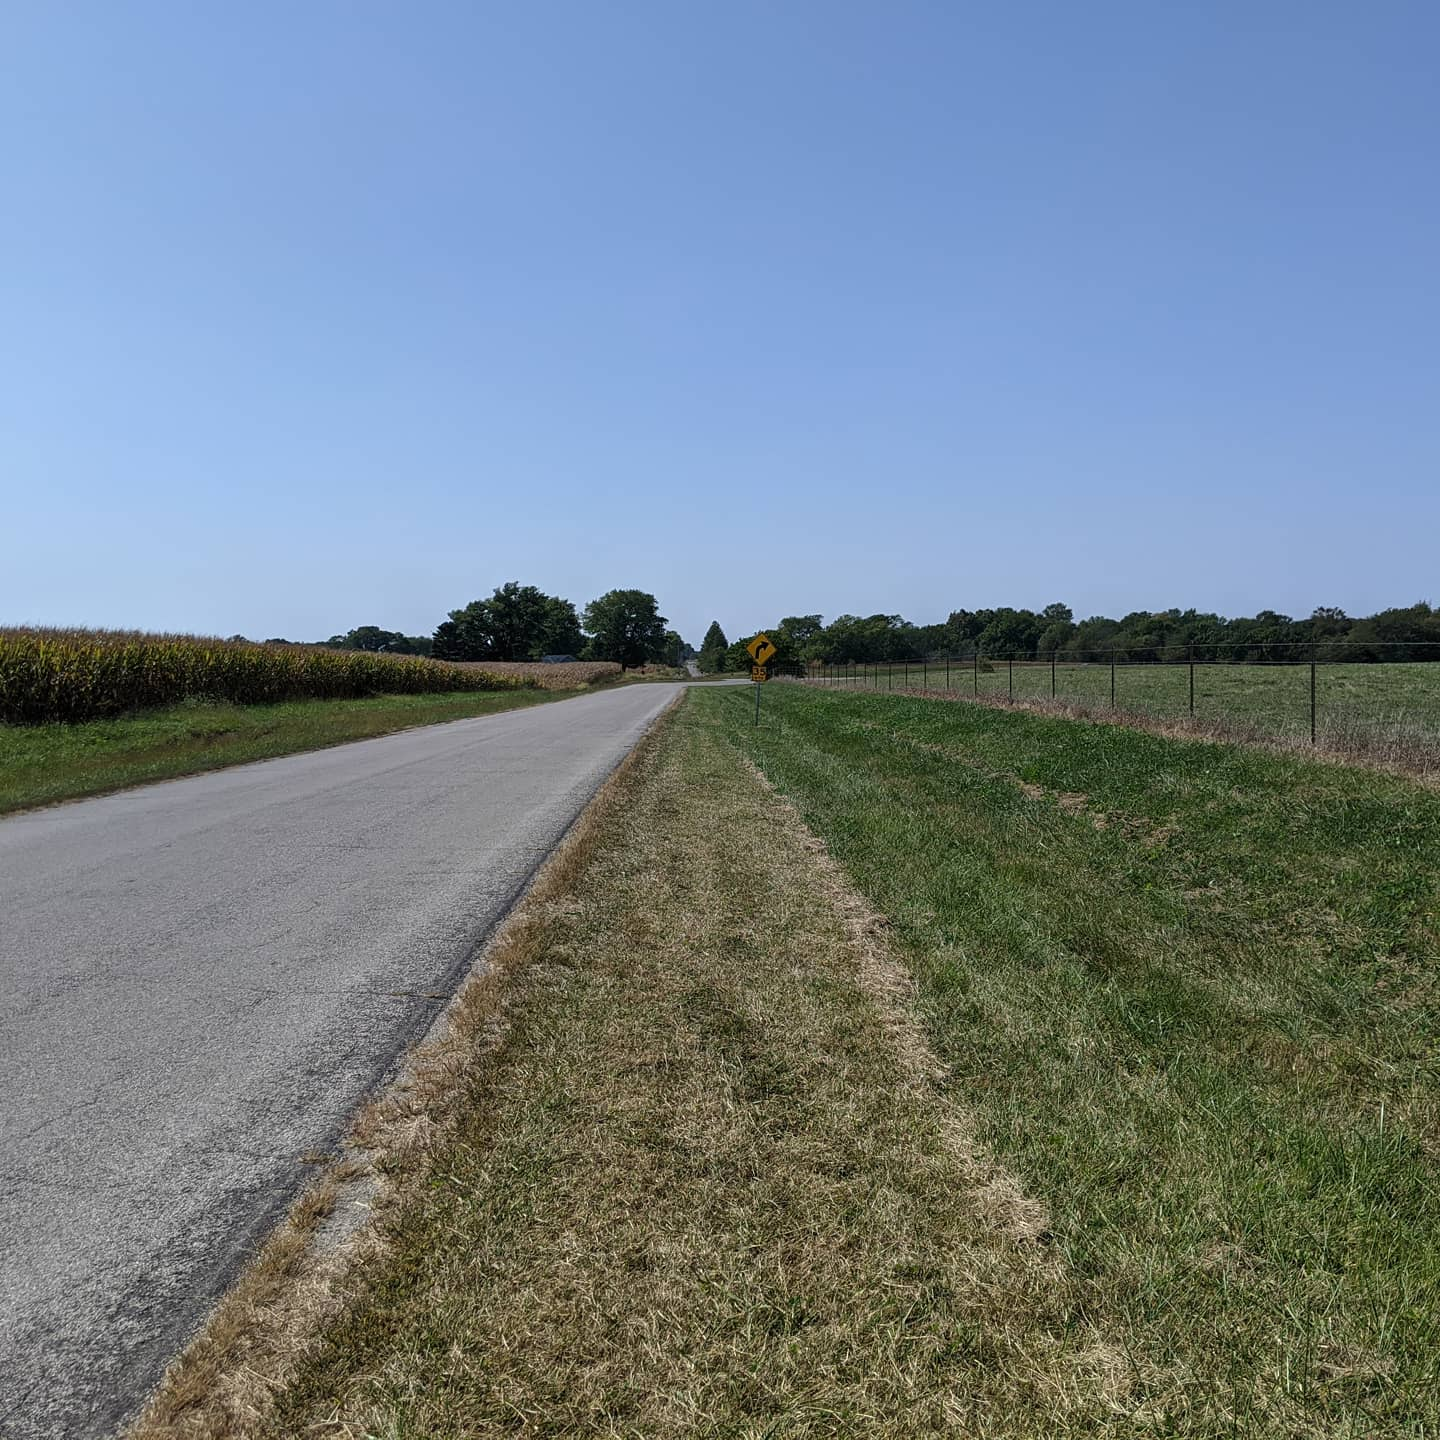 This is what a lot of old route 66 looks like in Illinois #roadtrip #route66This is actually one of the better stretches